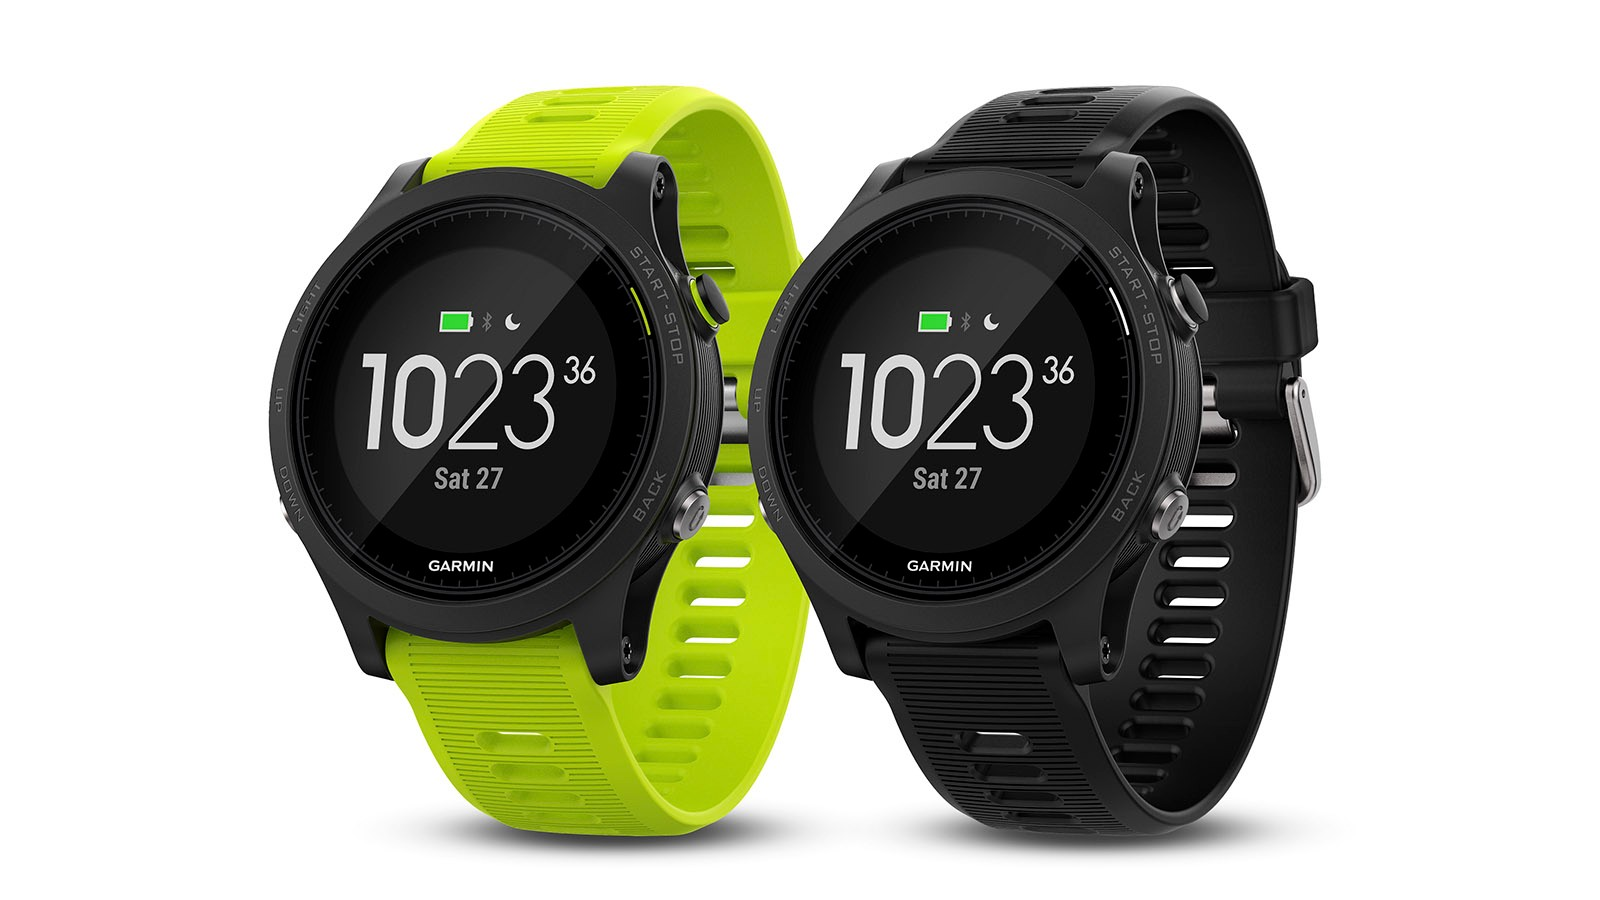 Garmin's new Forerunner 935 has the features of the Fenix5 without the price tag